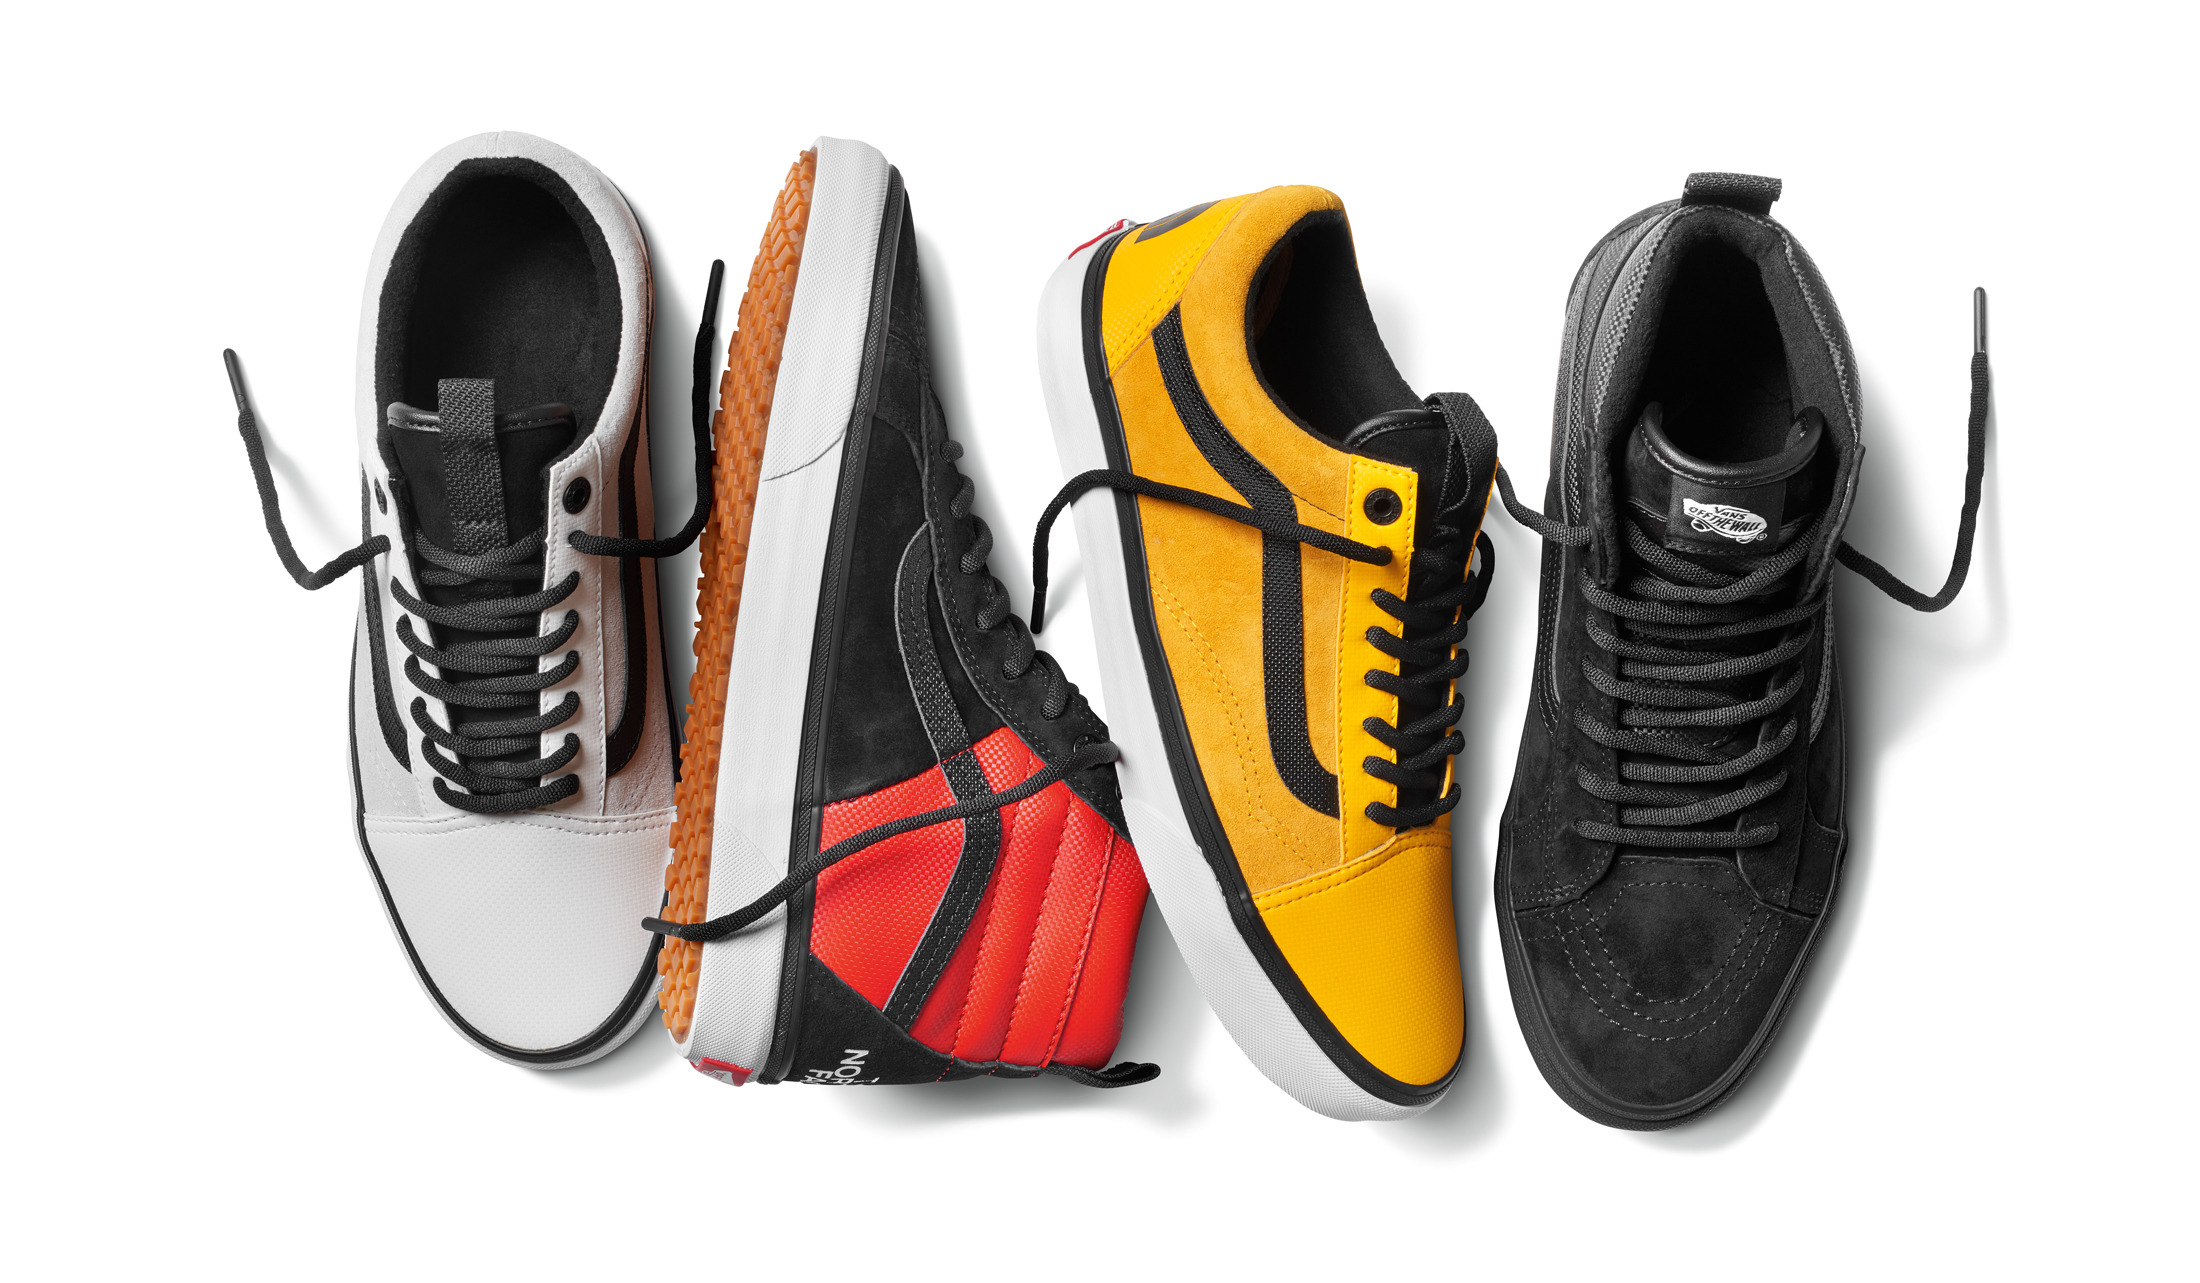 Vans x The North Face Collection | Graffitishop